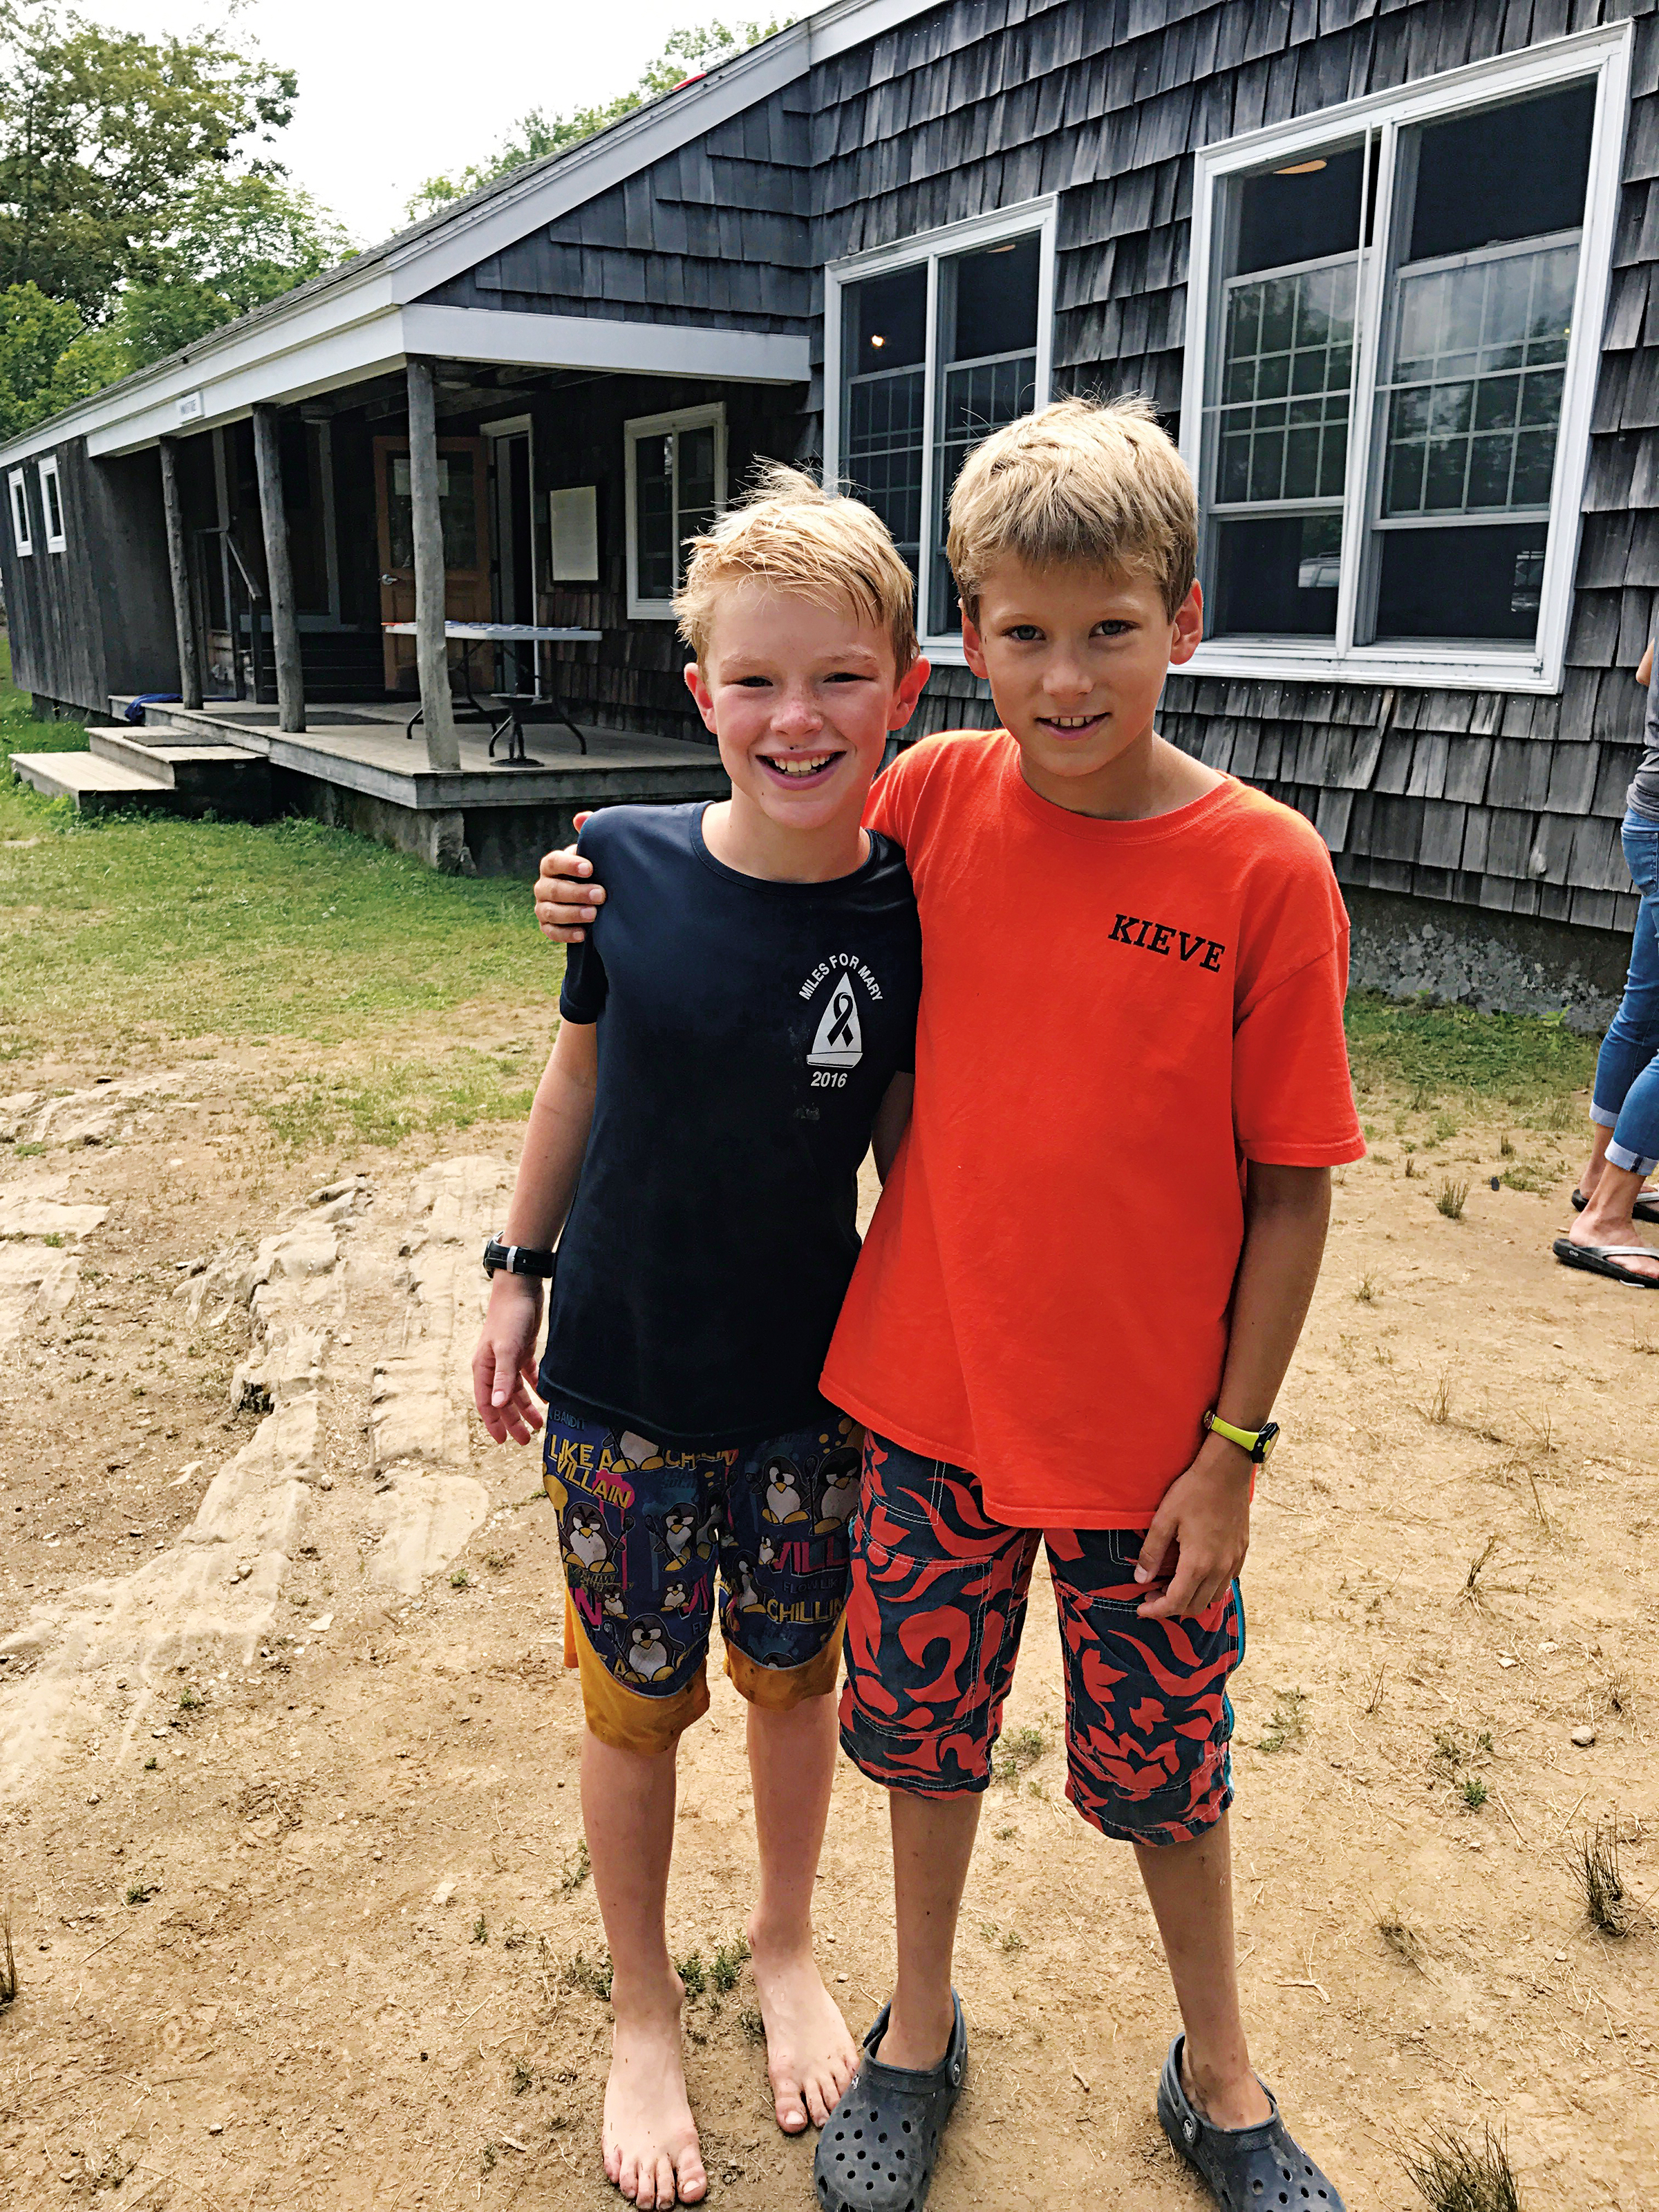 Whitman, son of Lydia Smyers '88, and Rowan, son of Zander Packard '88, at Camp Kieve in Maine.